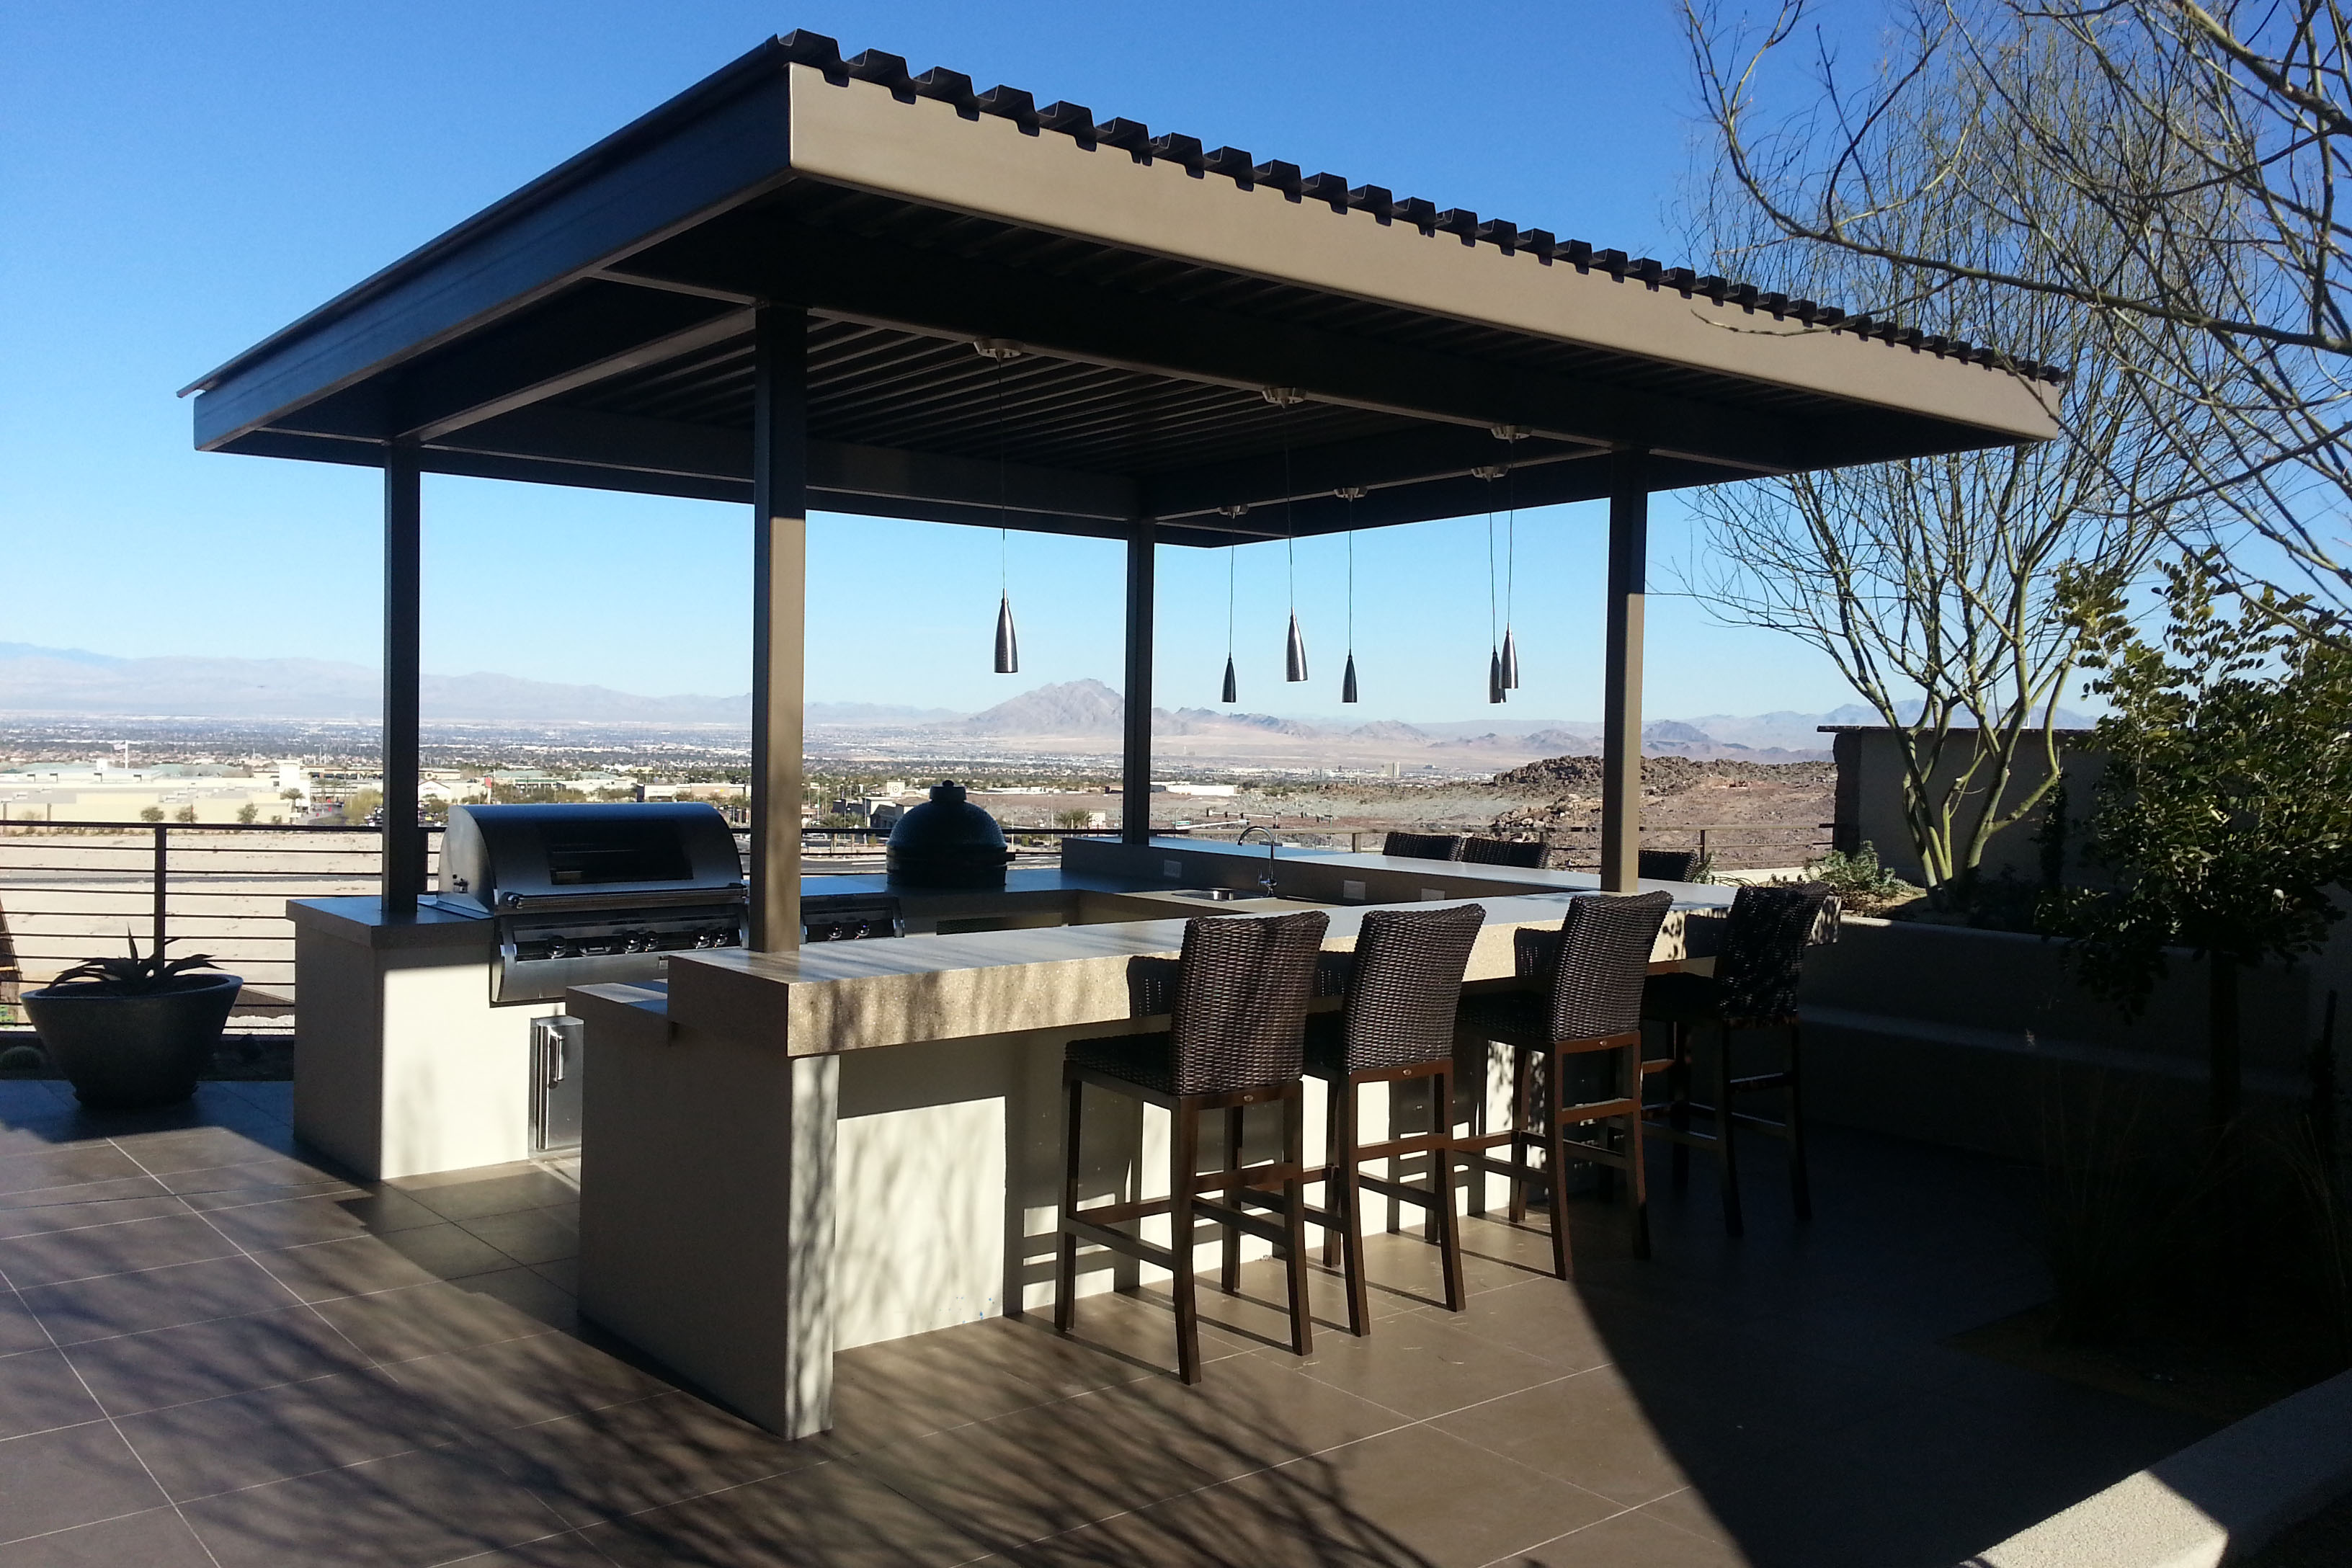 freestanding covered outdoor kitchen with BBQ, smoker and sinks, pendant lighting and seating for 8, overlooking Las Vegas